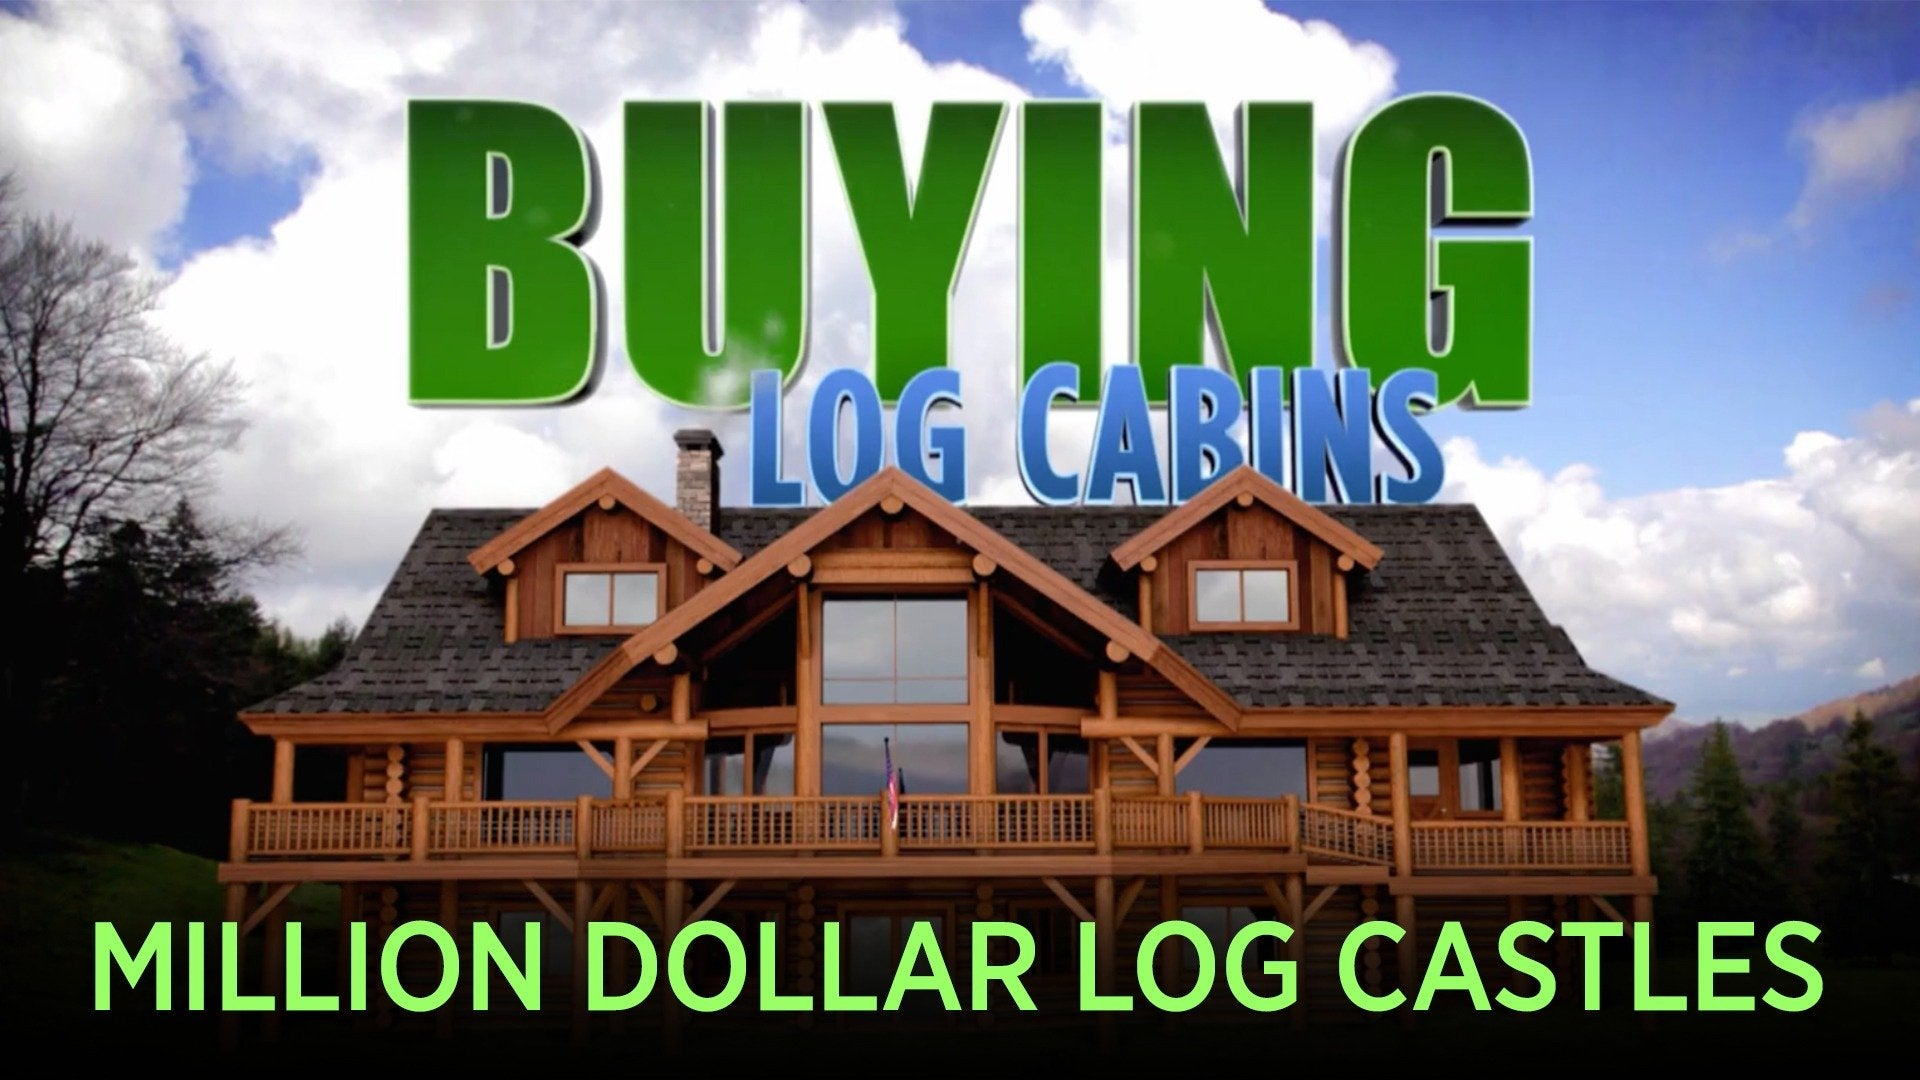 Buying Log Cabins: Million Dollar Log Castles